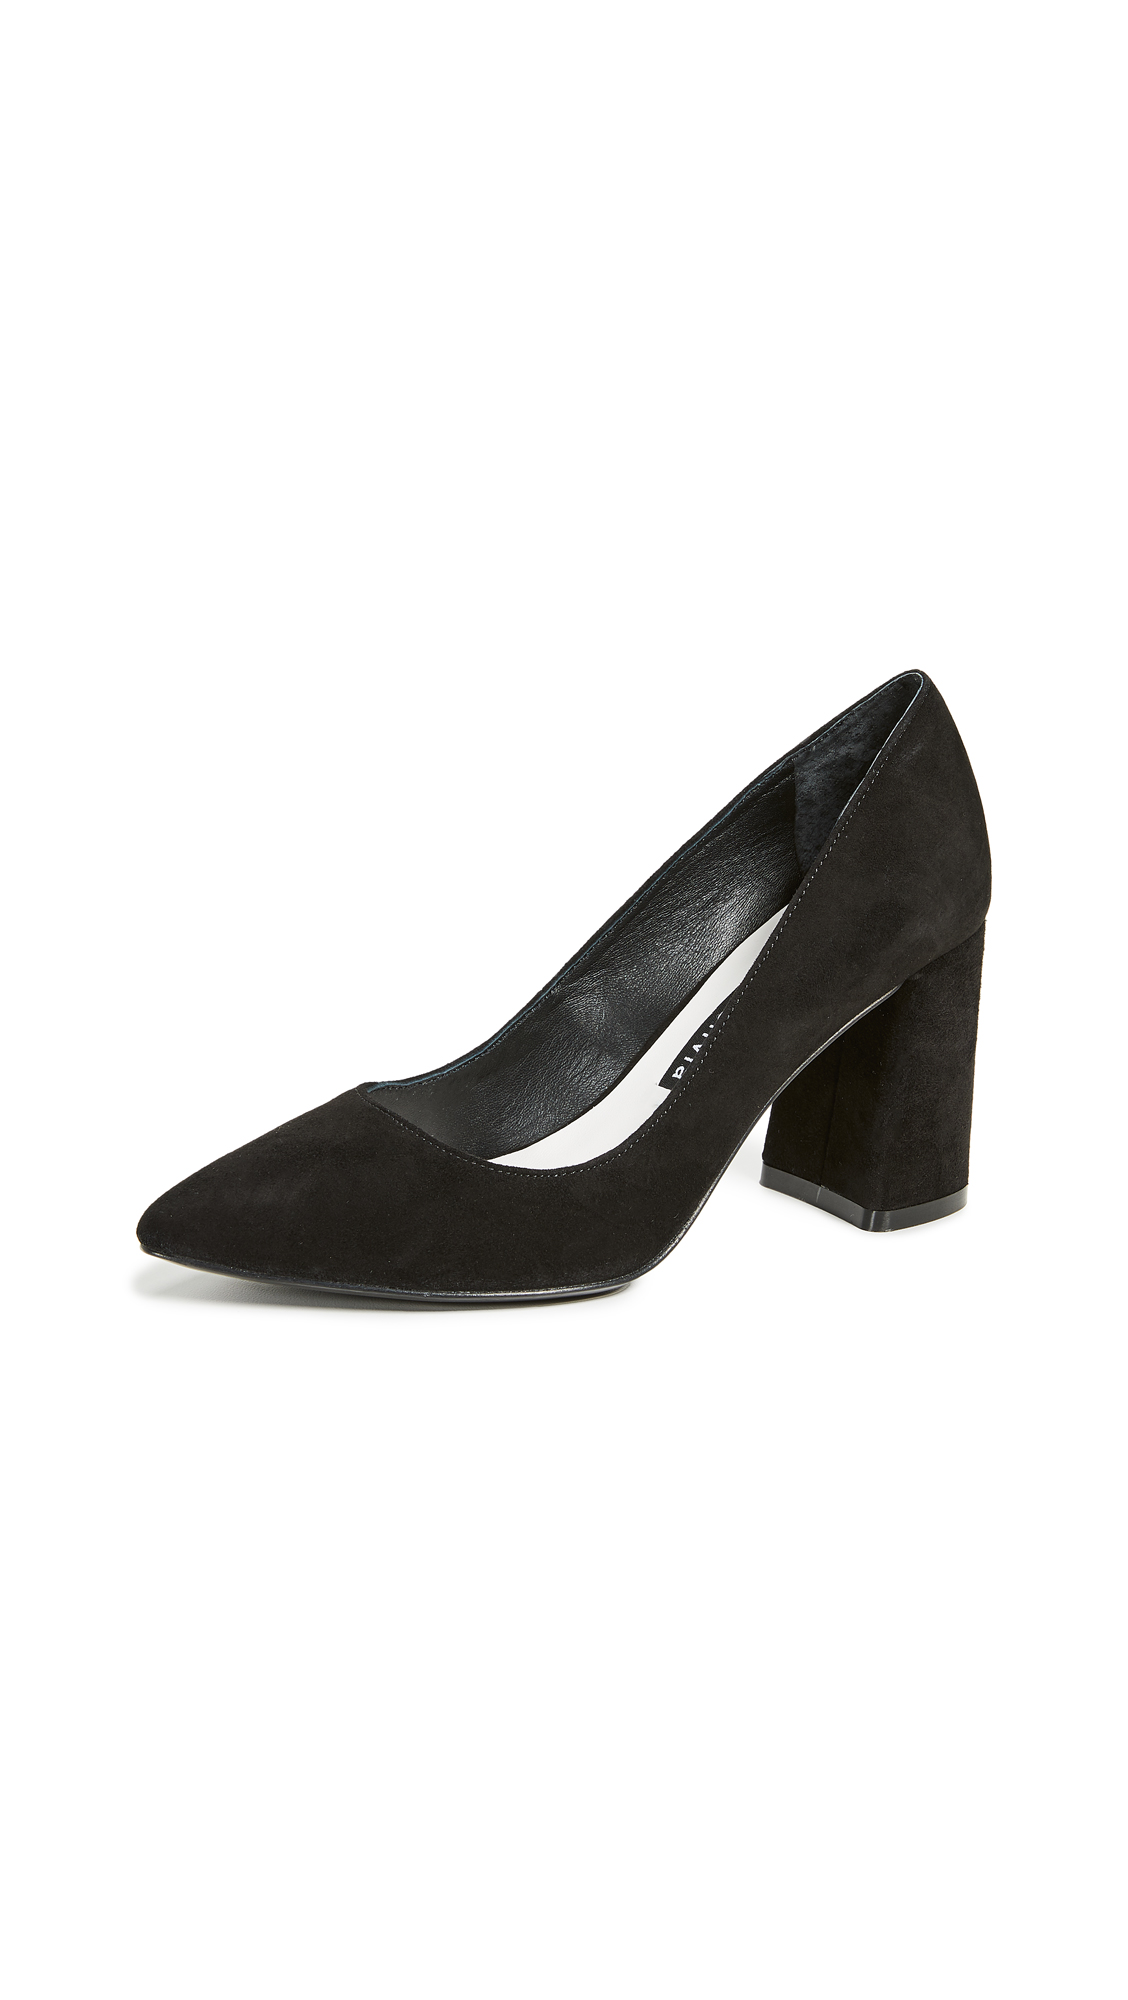 alice + olivia Demetra Pumps - Black